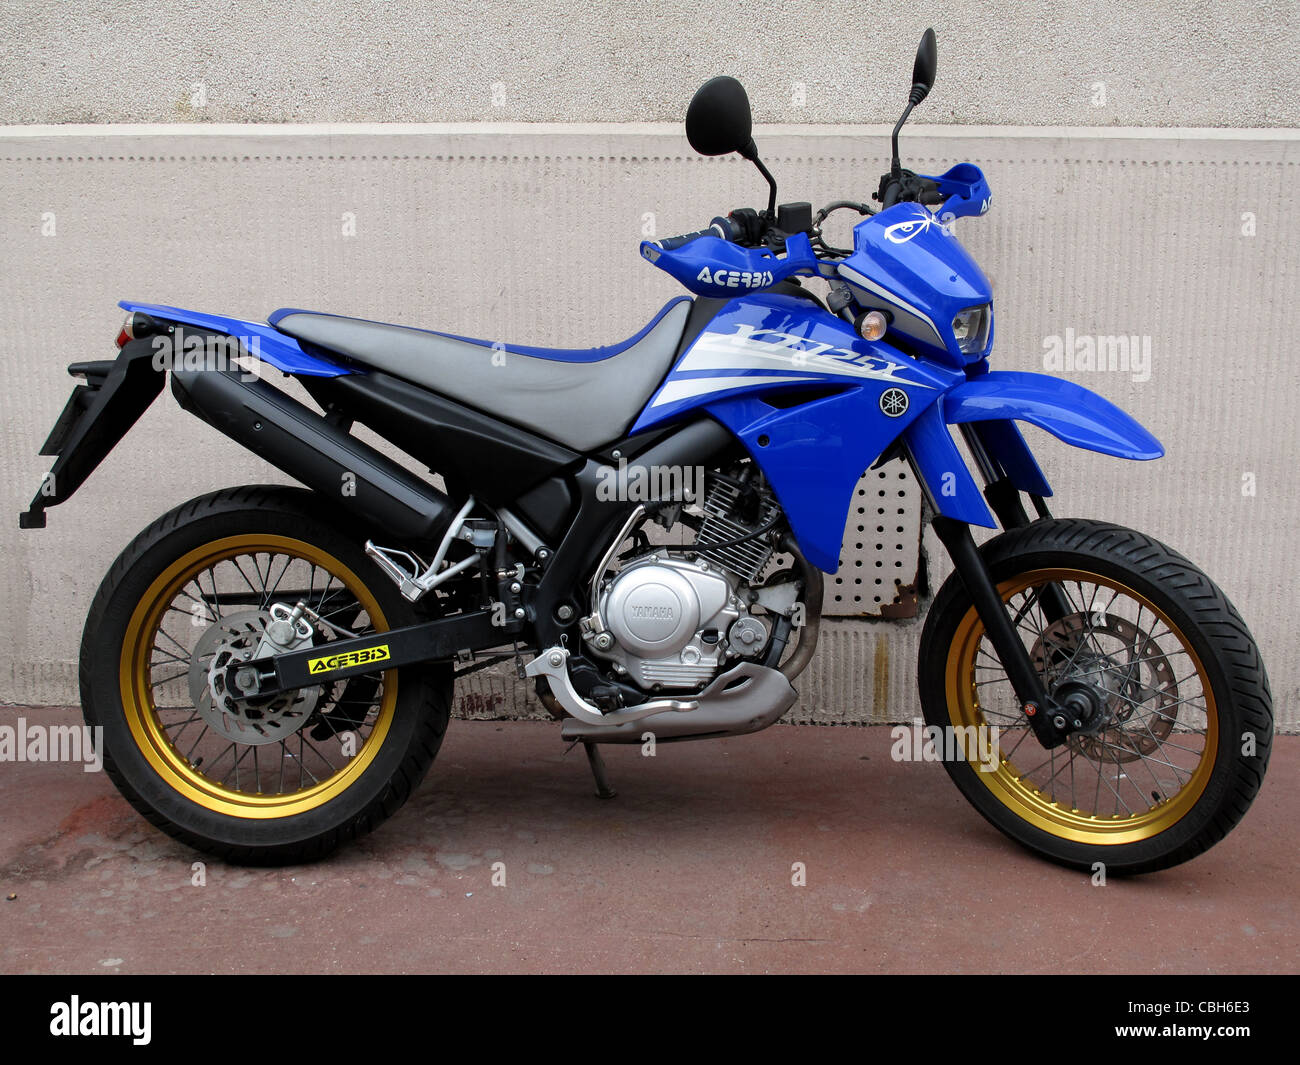 125 xtr yamaha motorcycle made in japan stock photo royalty free image 41560235 alamy. Black Bedroom Furniture Sets. Home Design Ideas